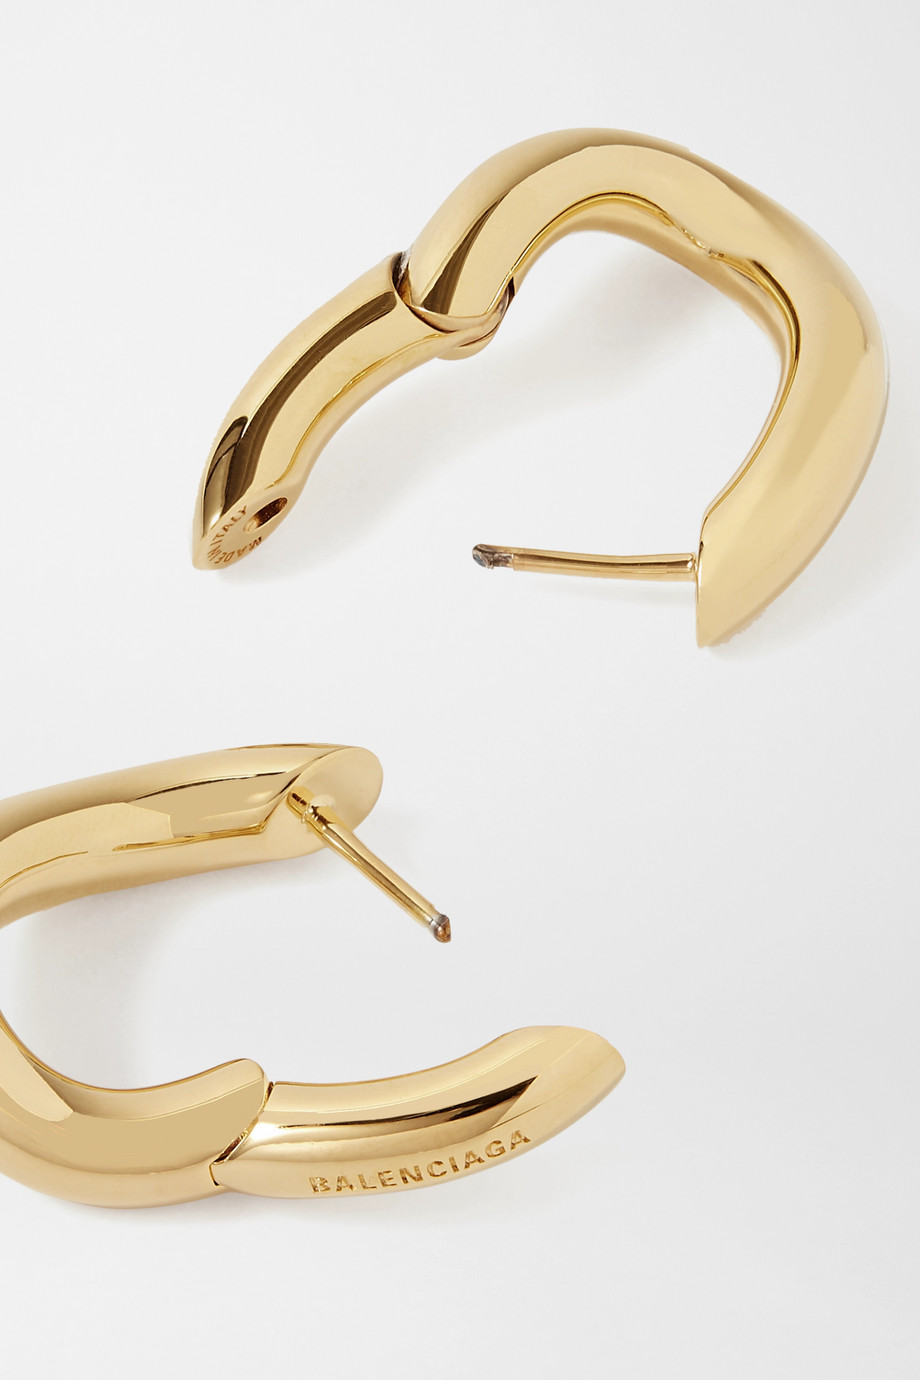 Balenciaga Loop XS gold-tone hoop earrings